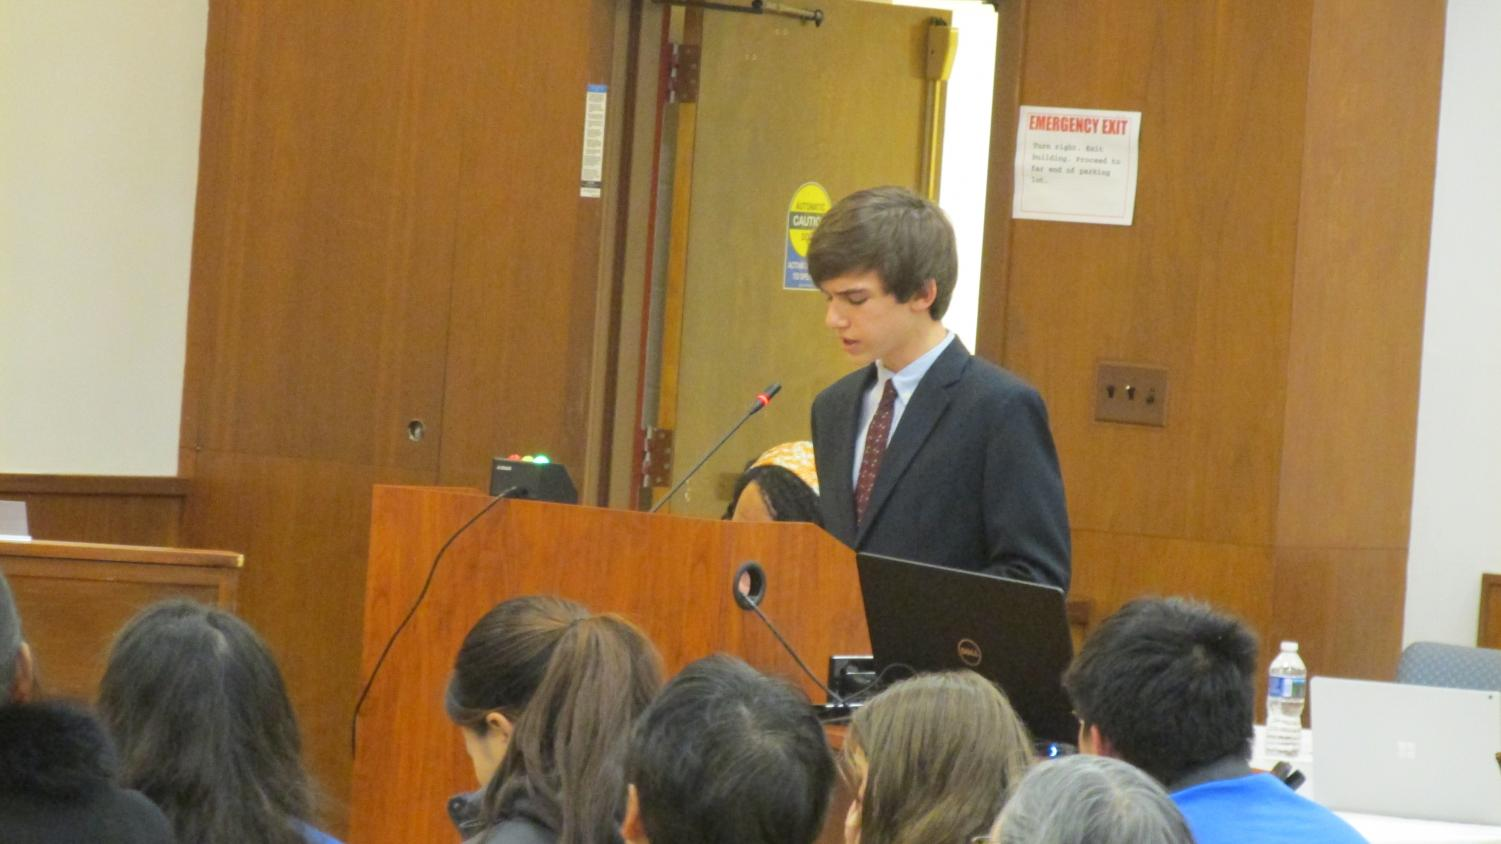 WJ junior SMOB candidate Drew Skilton presents himself in front of the panel of representatives for the MCPS Board of Education. He spoke alongside WJ representative James Bradley in an effort to change the current regulations surrounding counselor relationships with the students and their perspective schools. Photo by Jack Linde.